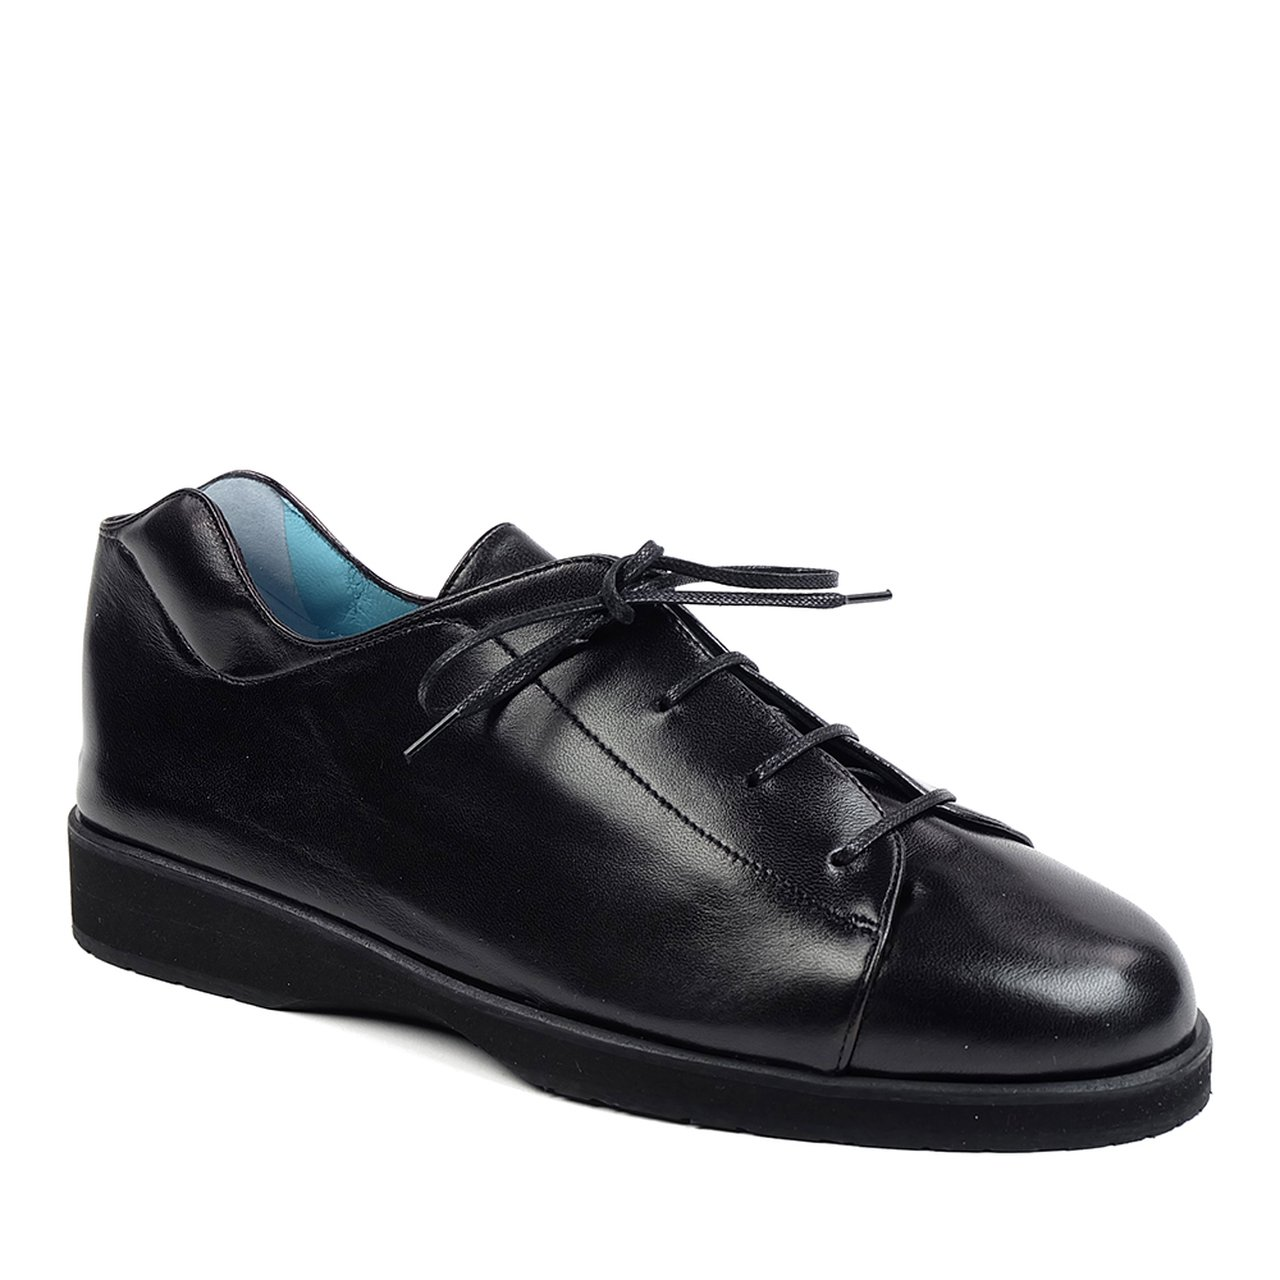 Hanigs shoes black blucher oxfords